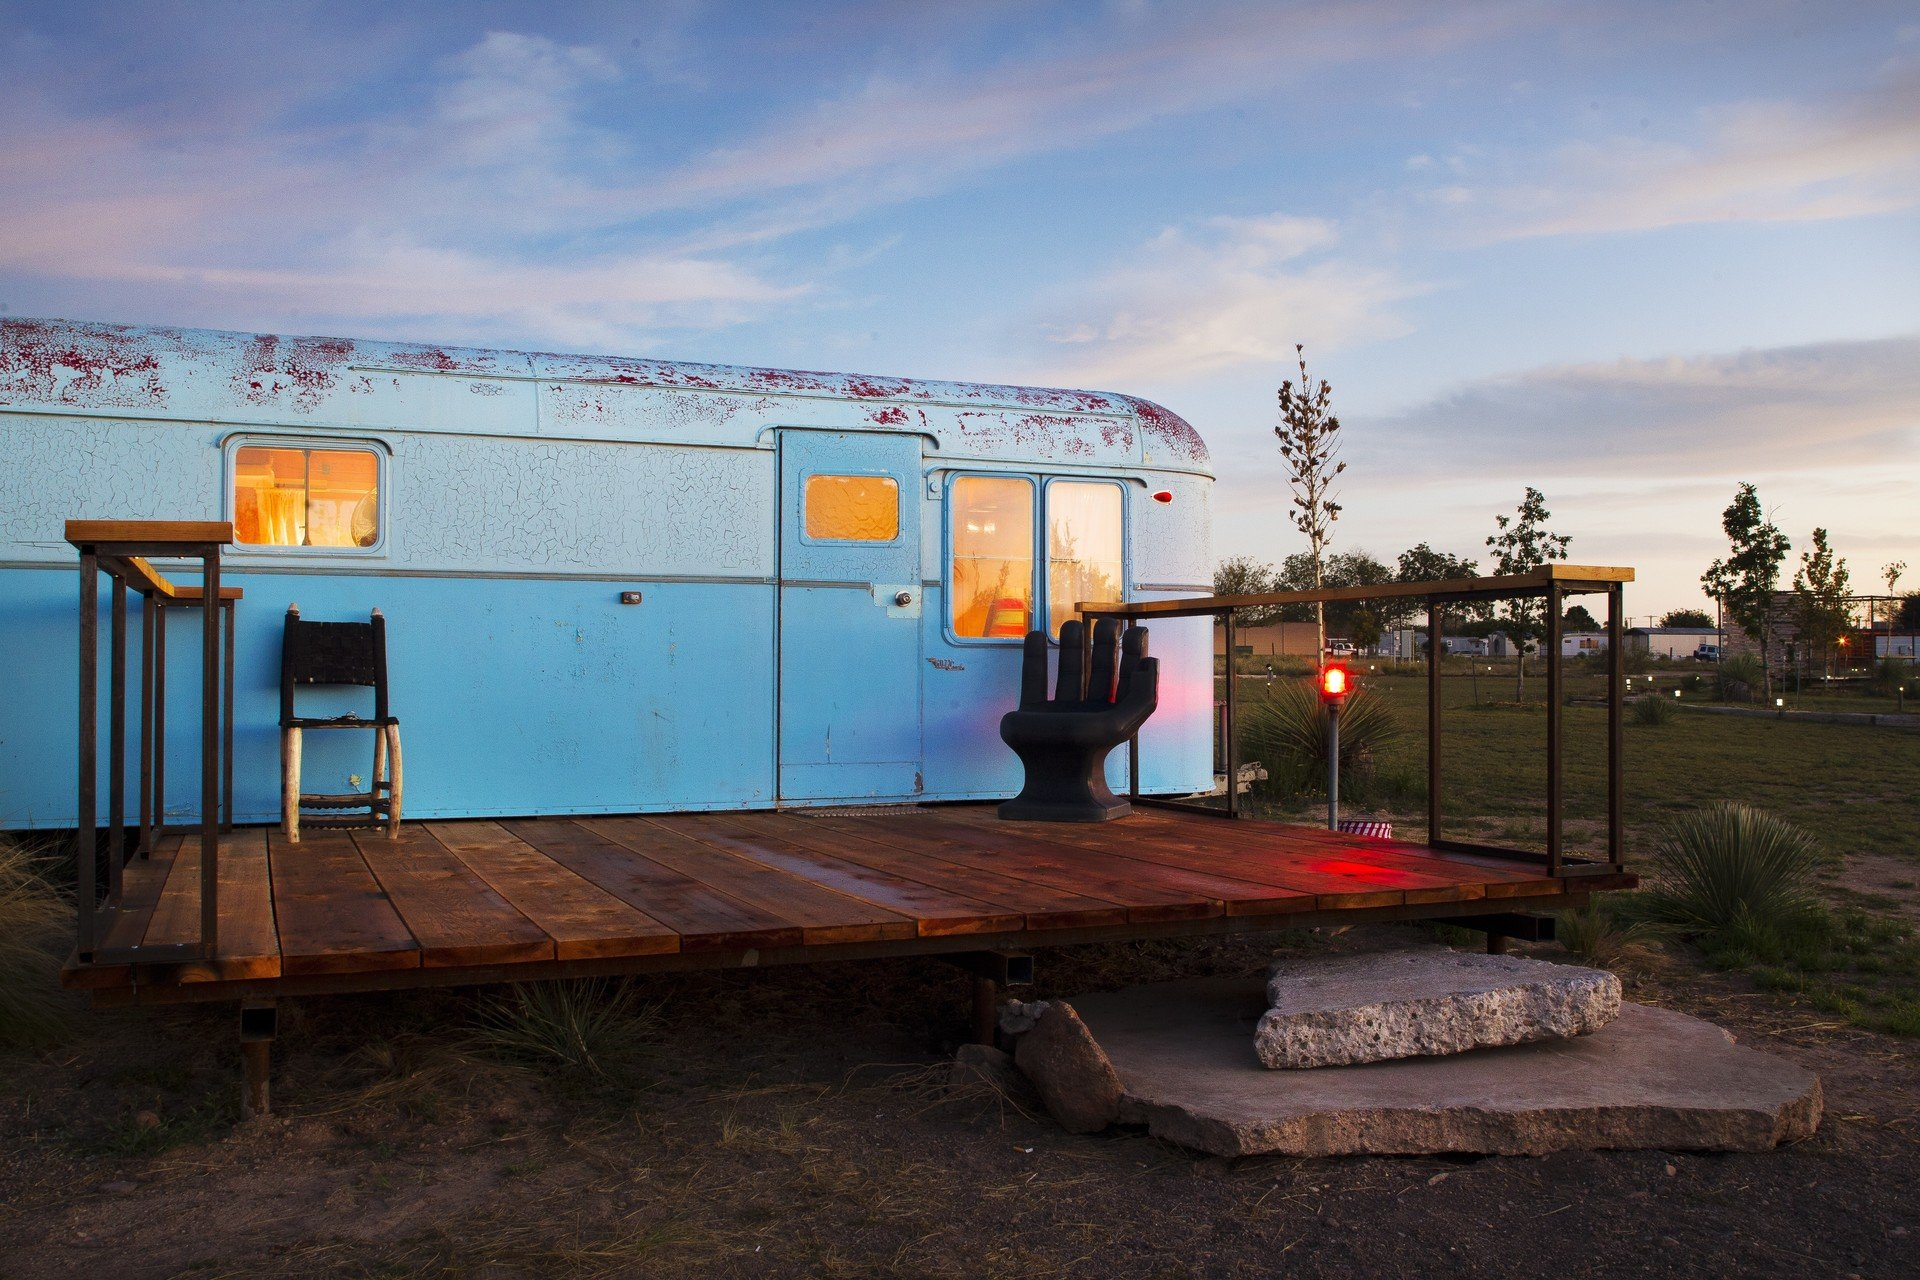 airstream ambient lighting artistic artsy calm dawn dusk Exterior Glamping Hip isolation Luxury Travel quirky remote serene trendy Trip Ideas sky outdoor urban area vehicle